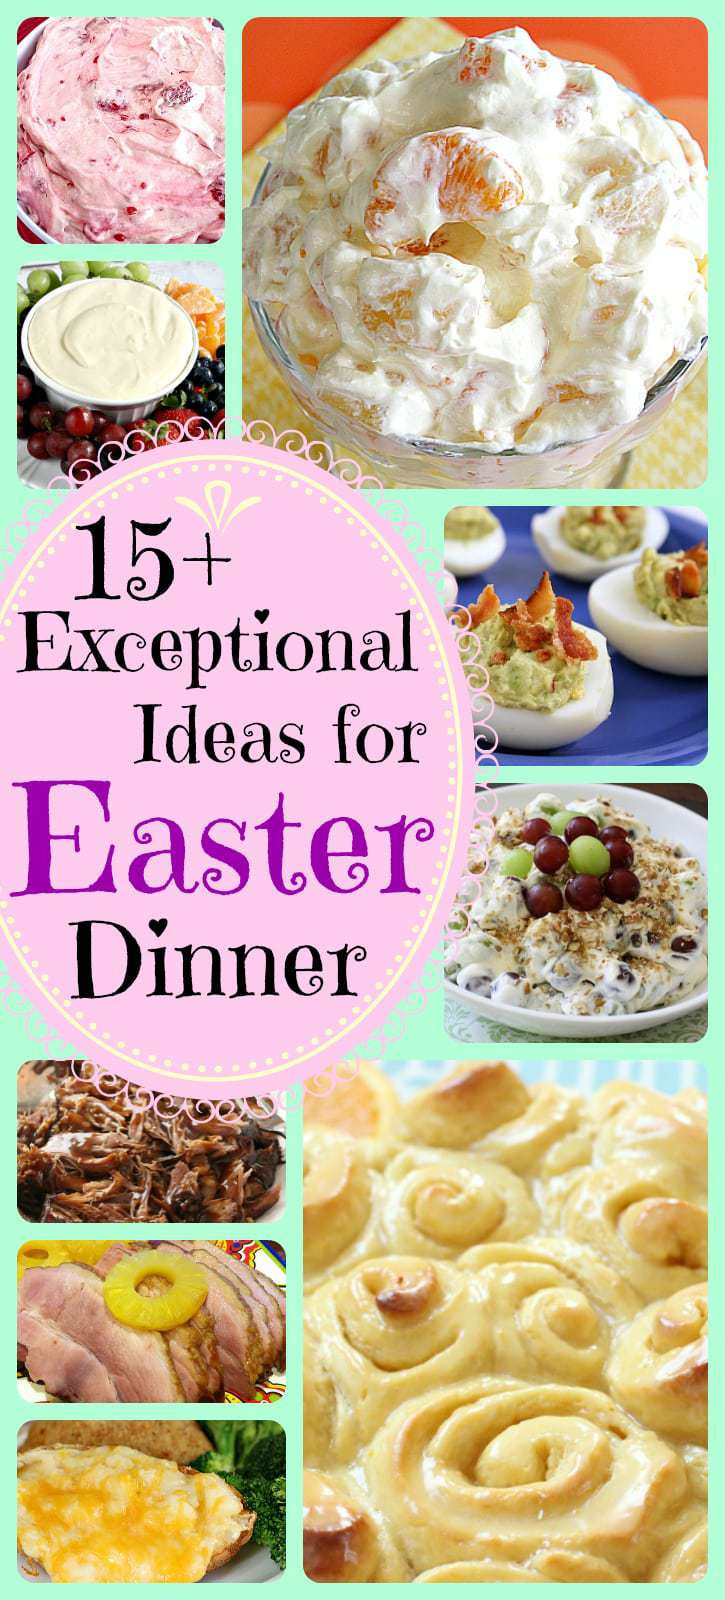 Easy Easter Dinner Recipe  EASY & DELICIOUS EASTER DINNER RECIPES Butter with a